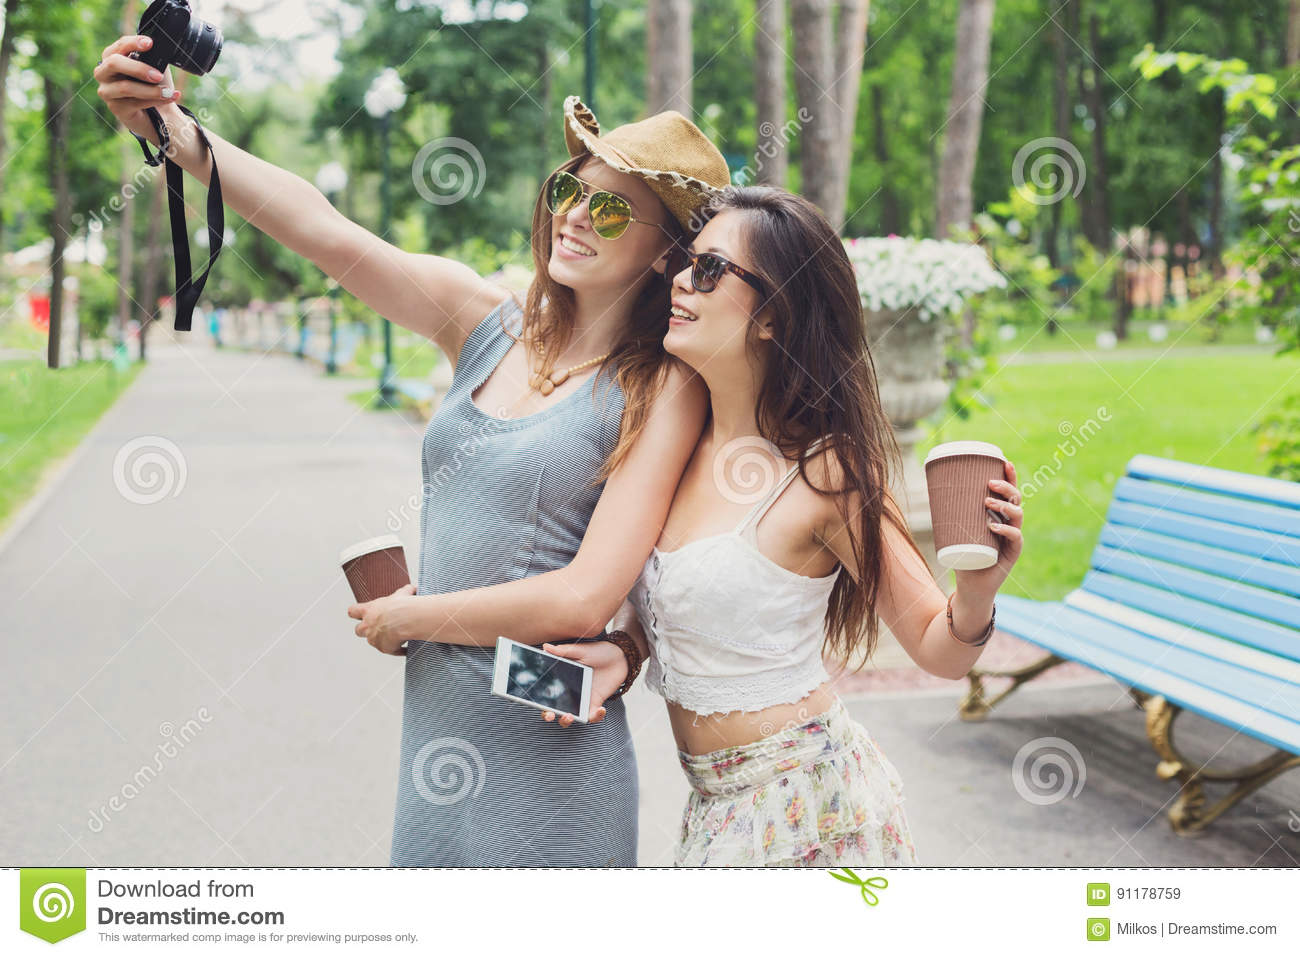 2689df2248 Two girls friends outdoors take selfie with smartphone. Young female  tourists in boho chic fashion clothes